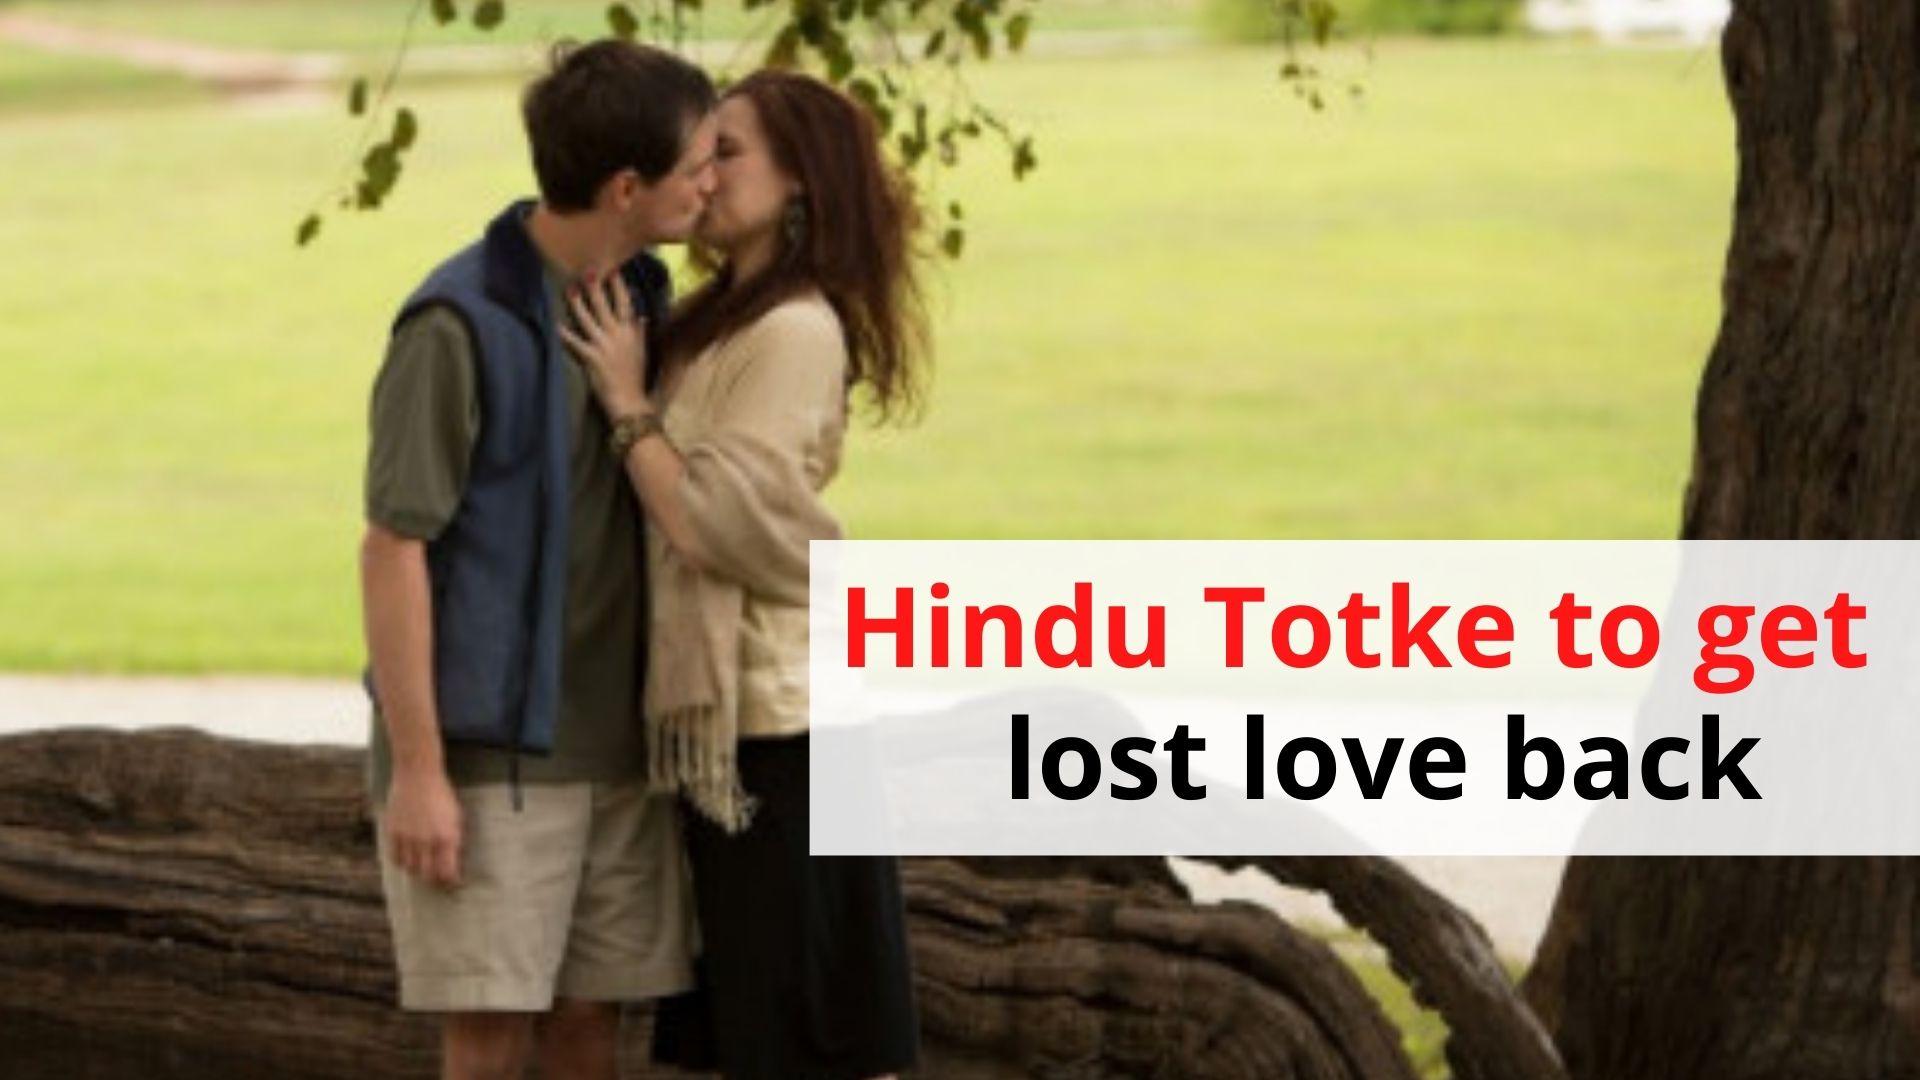 Hindu Totke to get the lost love back